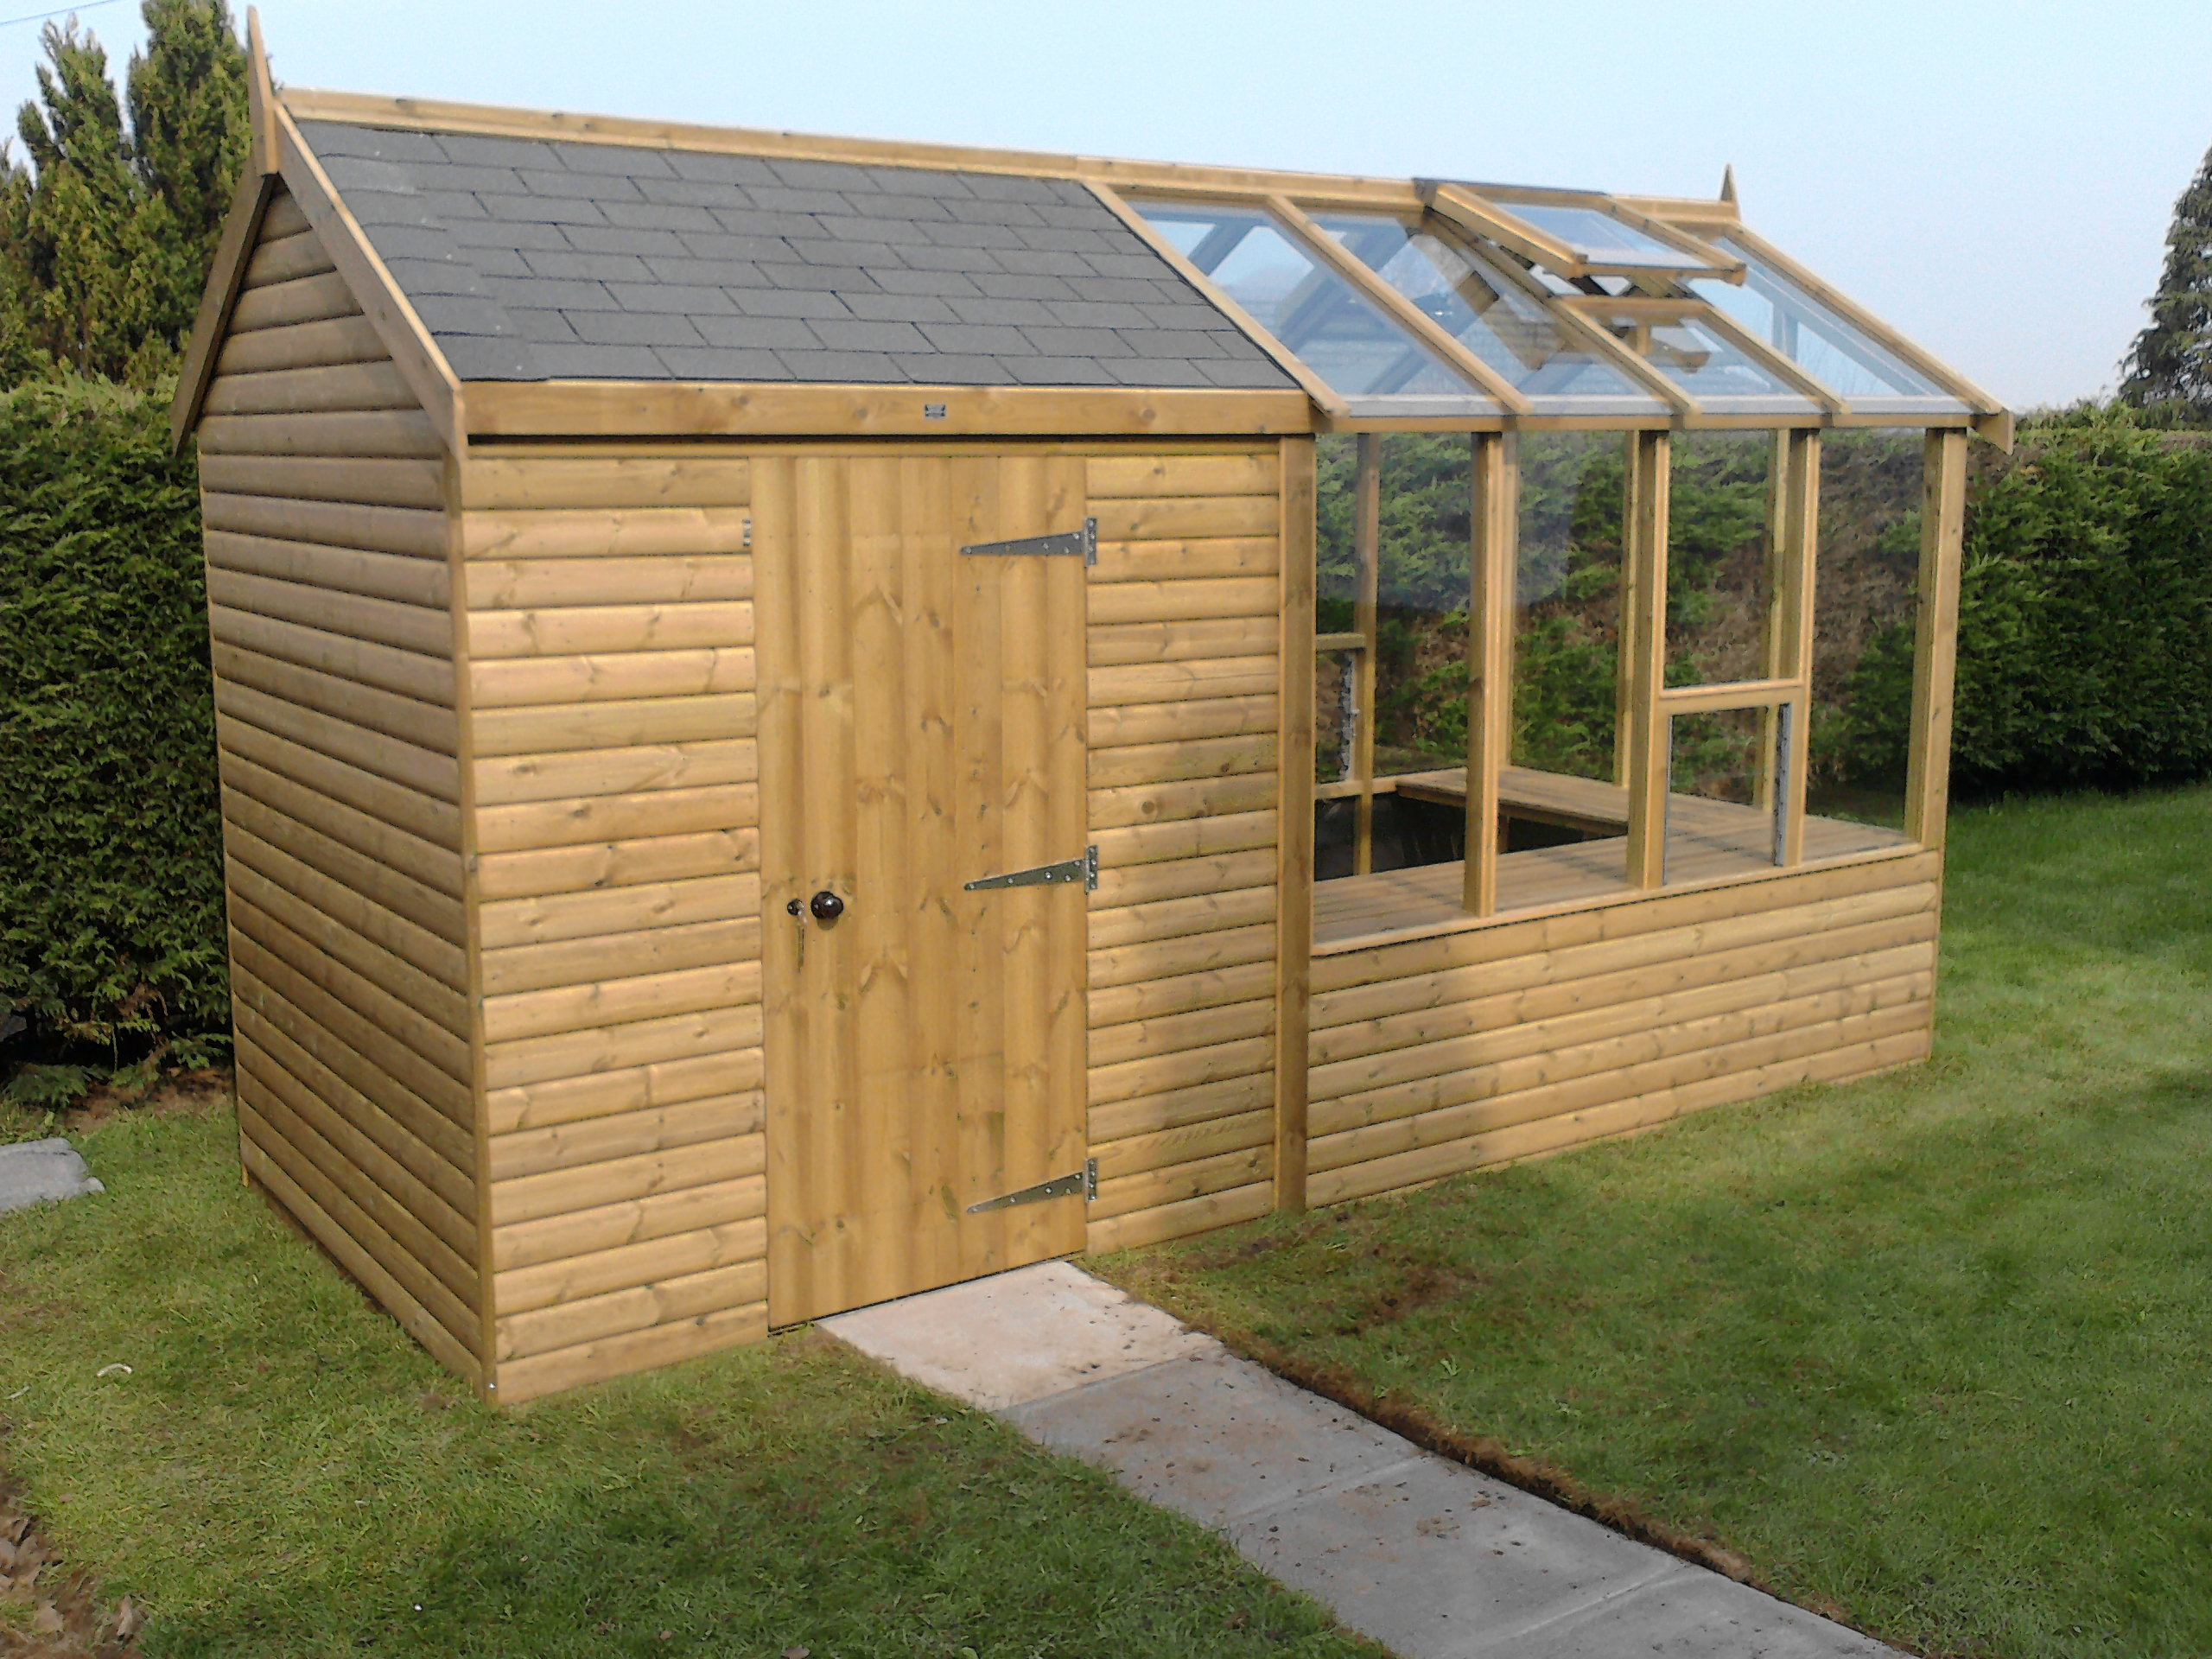 Greenhouse garden shed locating free shed plans on the for Garden shed designs